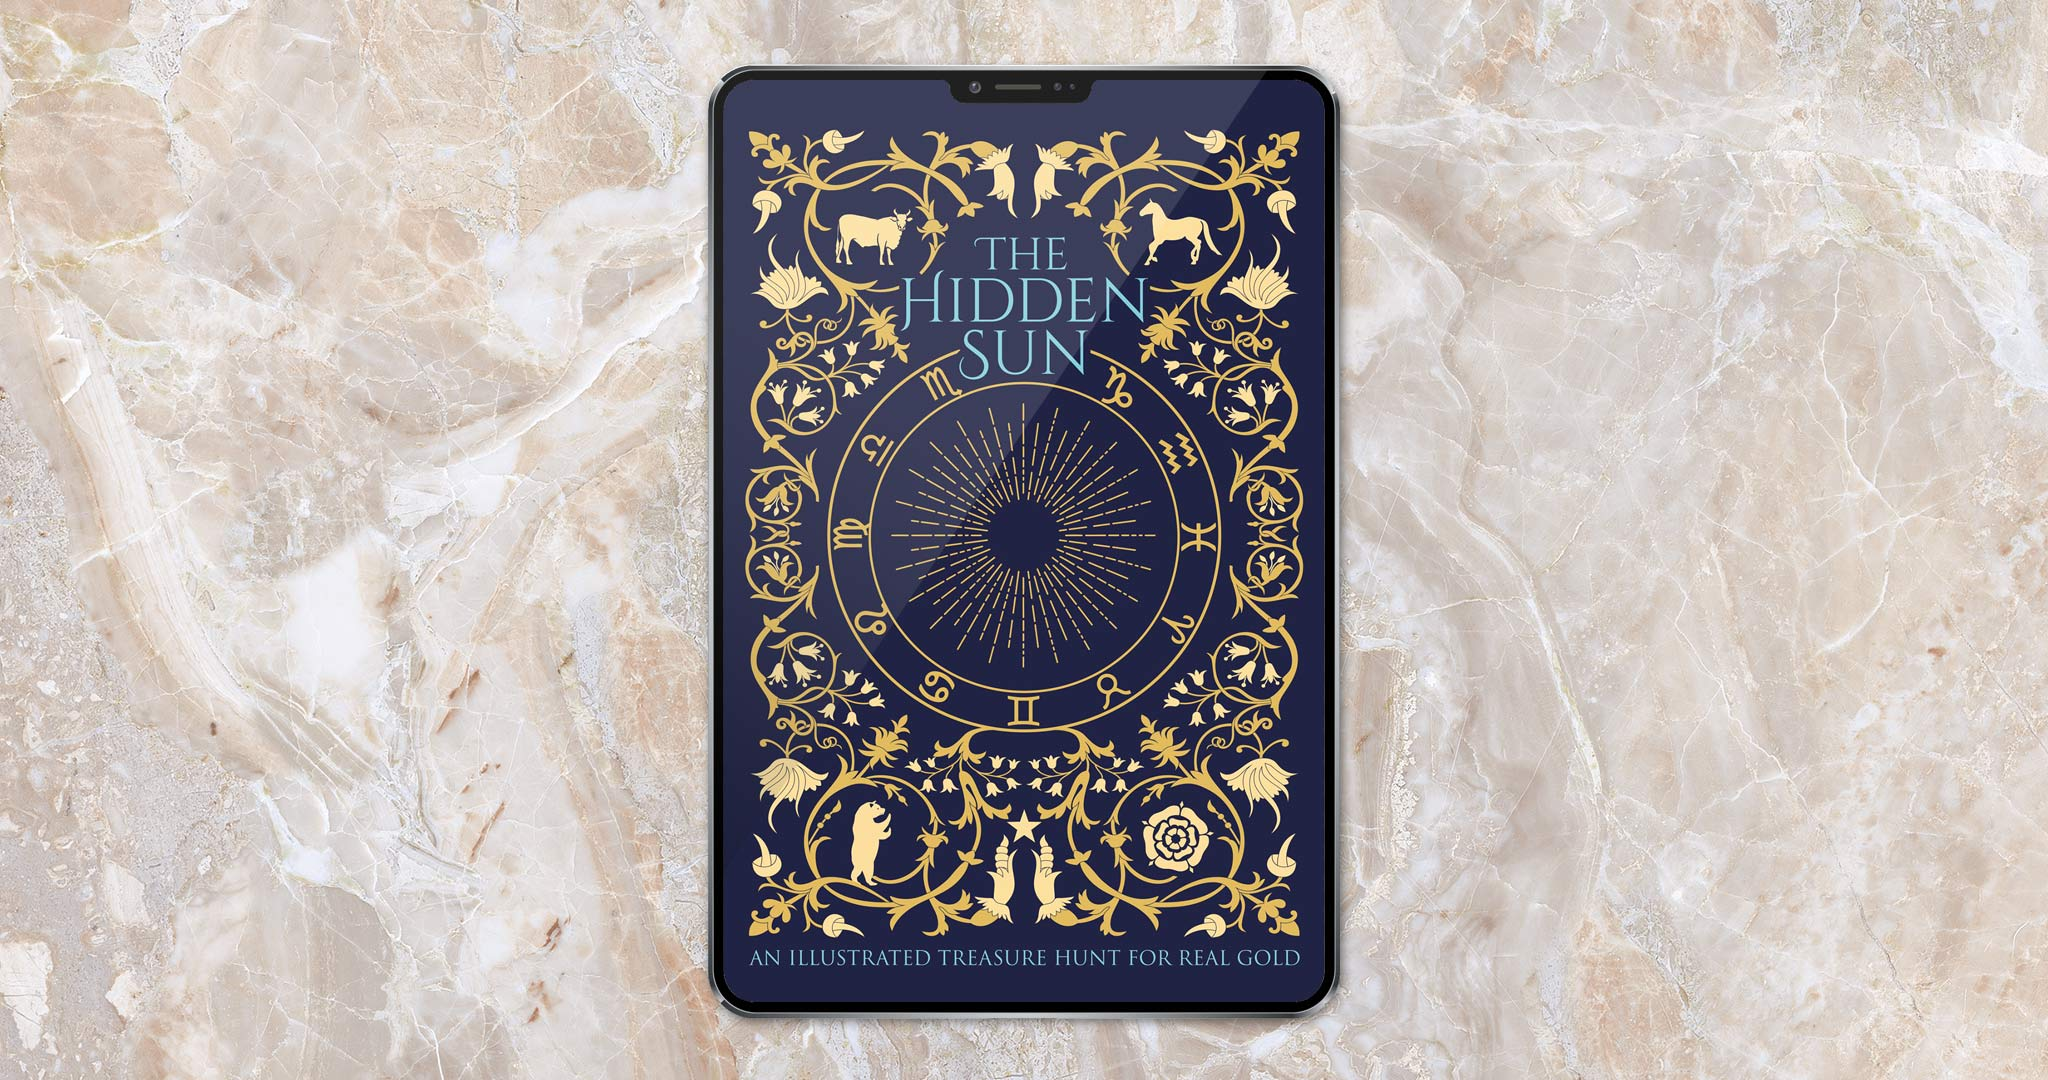 The Hidden Sun - An Illustrated Treasure Hunt for Real Gold eBook on an iPad